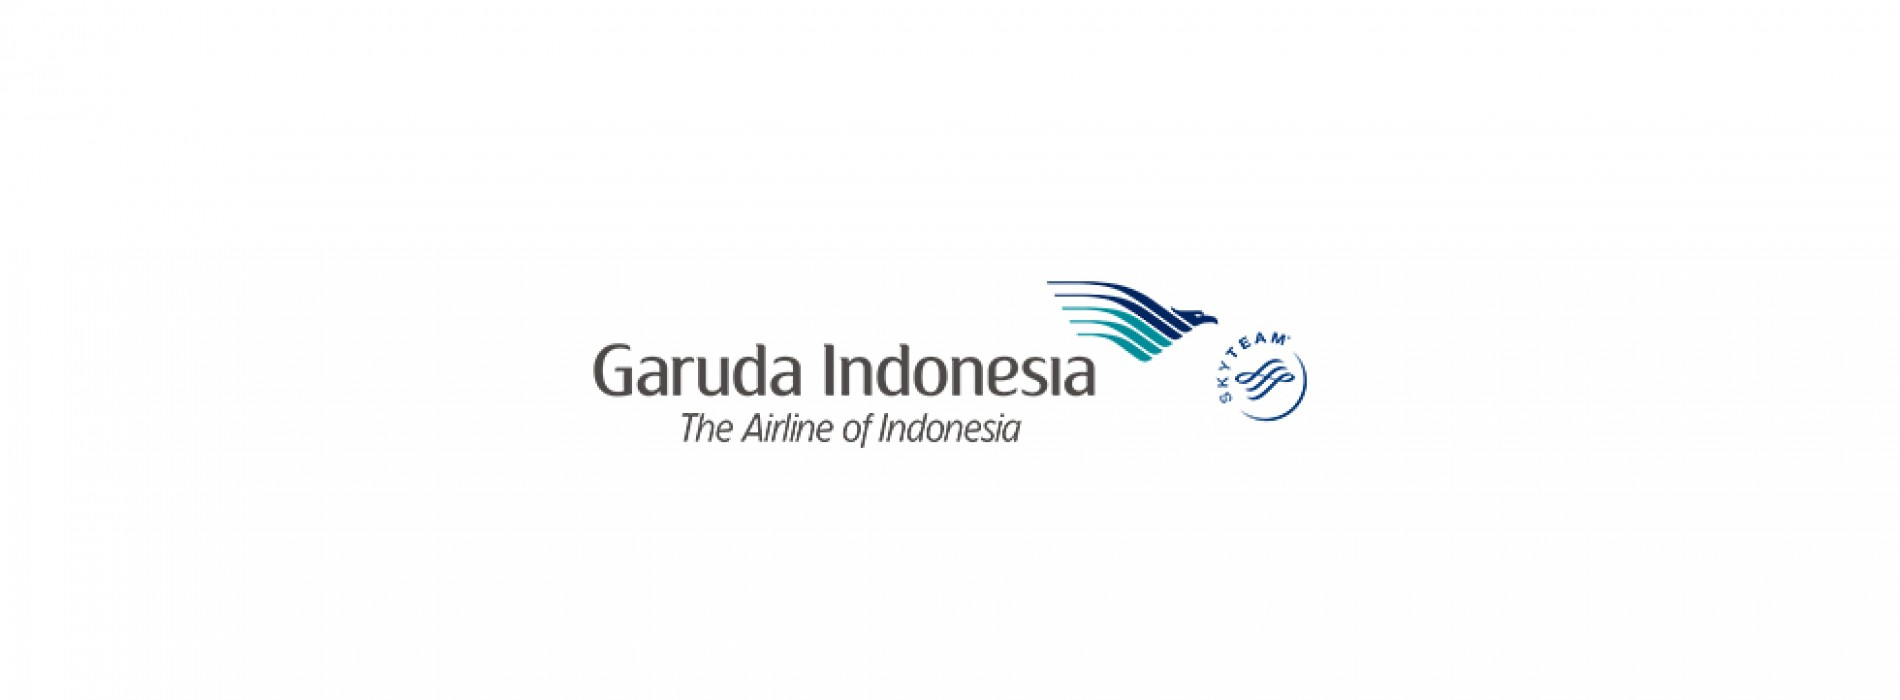 Garuda Indonesia strengthens its global presence with a new service to Mumbai